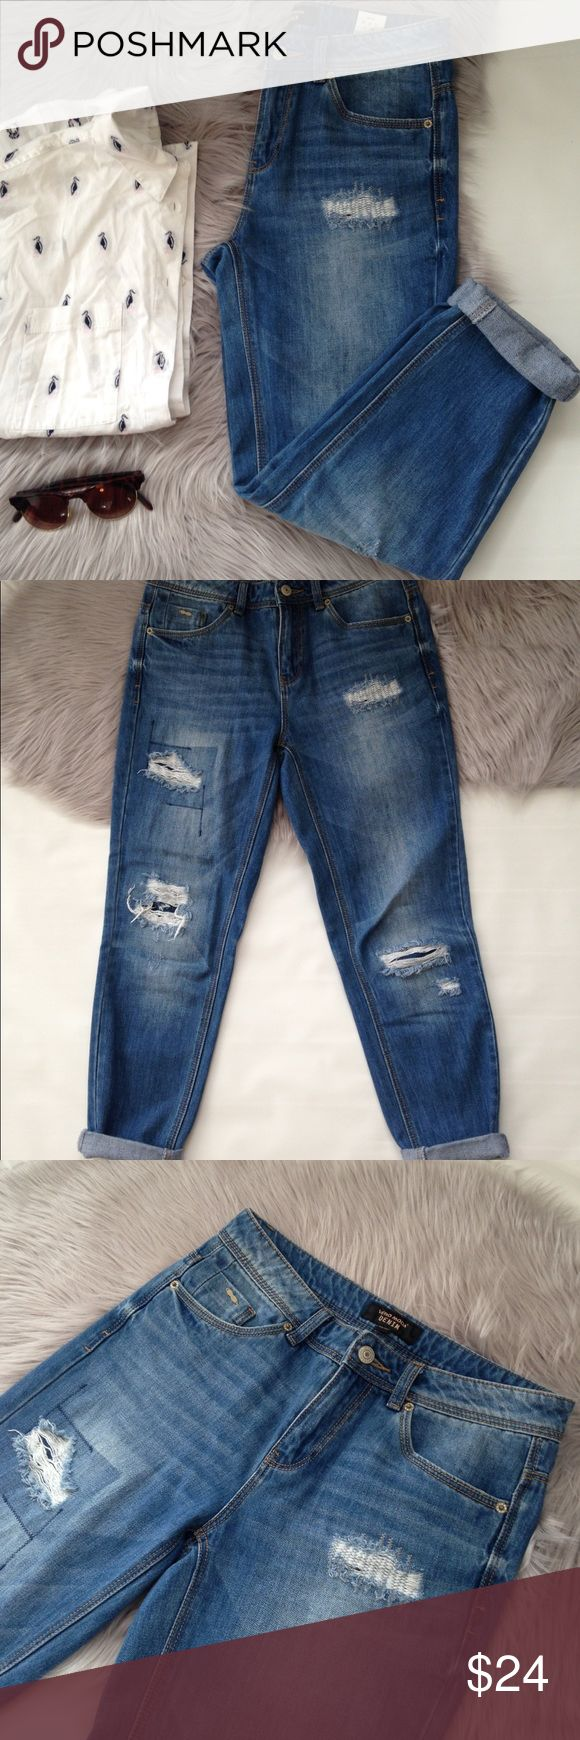 Vero Moda cropped boyfriend distressed jeans 25 Excellent condition Oasis Boyfriend jeans from Vero Moda. Heavy distressing and a cropped length make these the cutest boyfriend jeans! I've not been able to convert the size to US, but I think they would best fit a size 25. Please use measurements to determine fit! Measurements: waist 15, rise 9.5, hip 18.5, inseam 26.5 Vero Moda Jeans Boyfriend